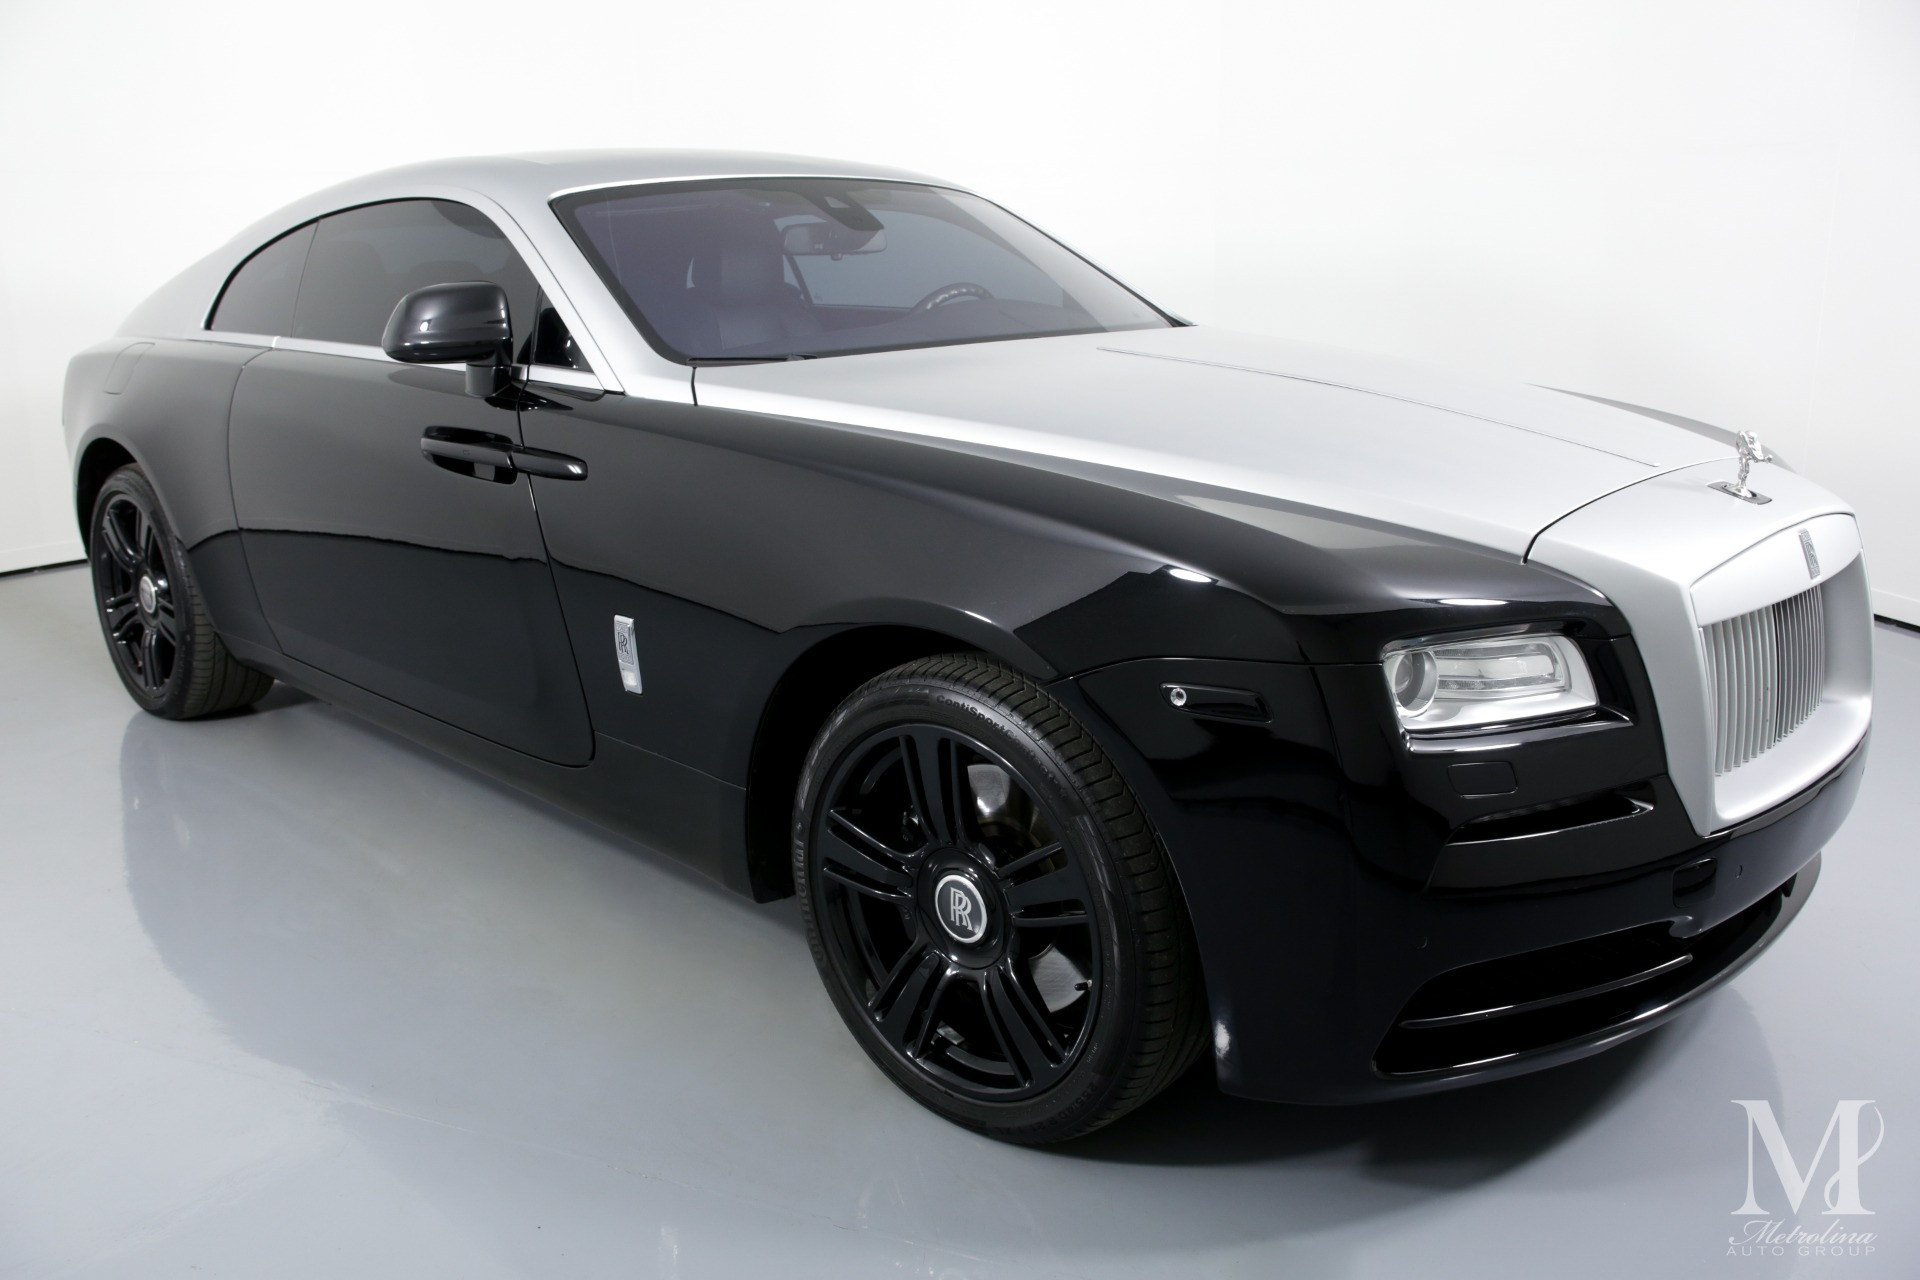 Used 2014 Rolls-Royce Wraith for sale $149,996 at Metrolina Auto Group in Charlotte NC 28217 - 2